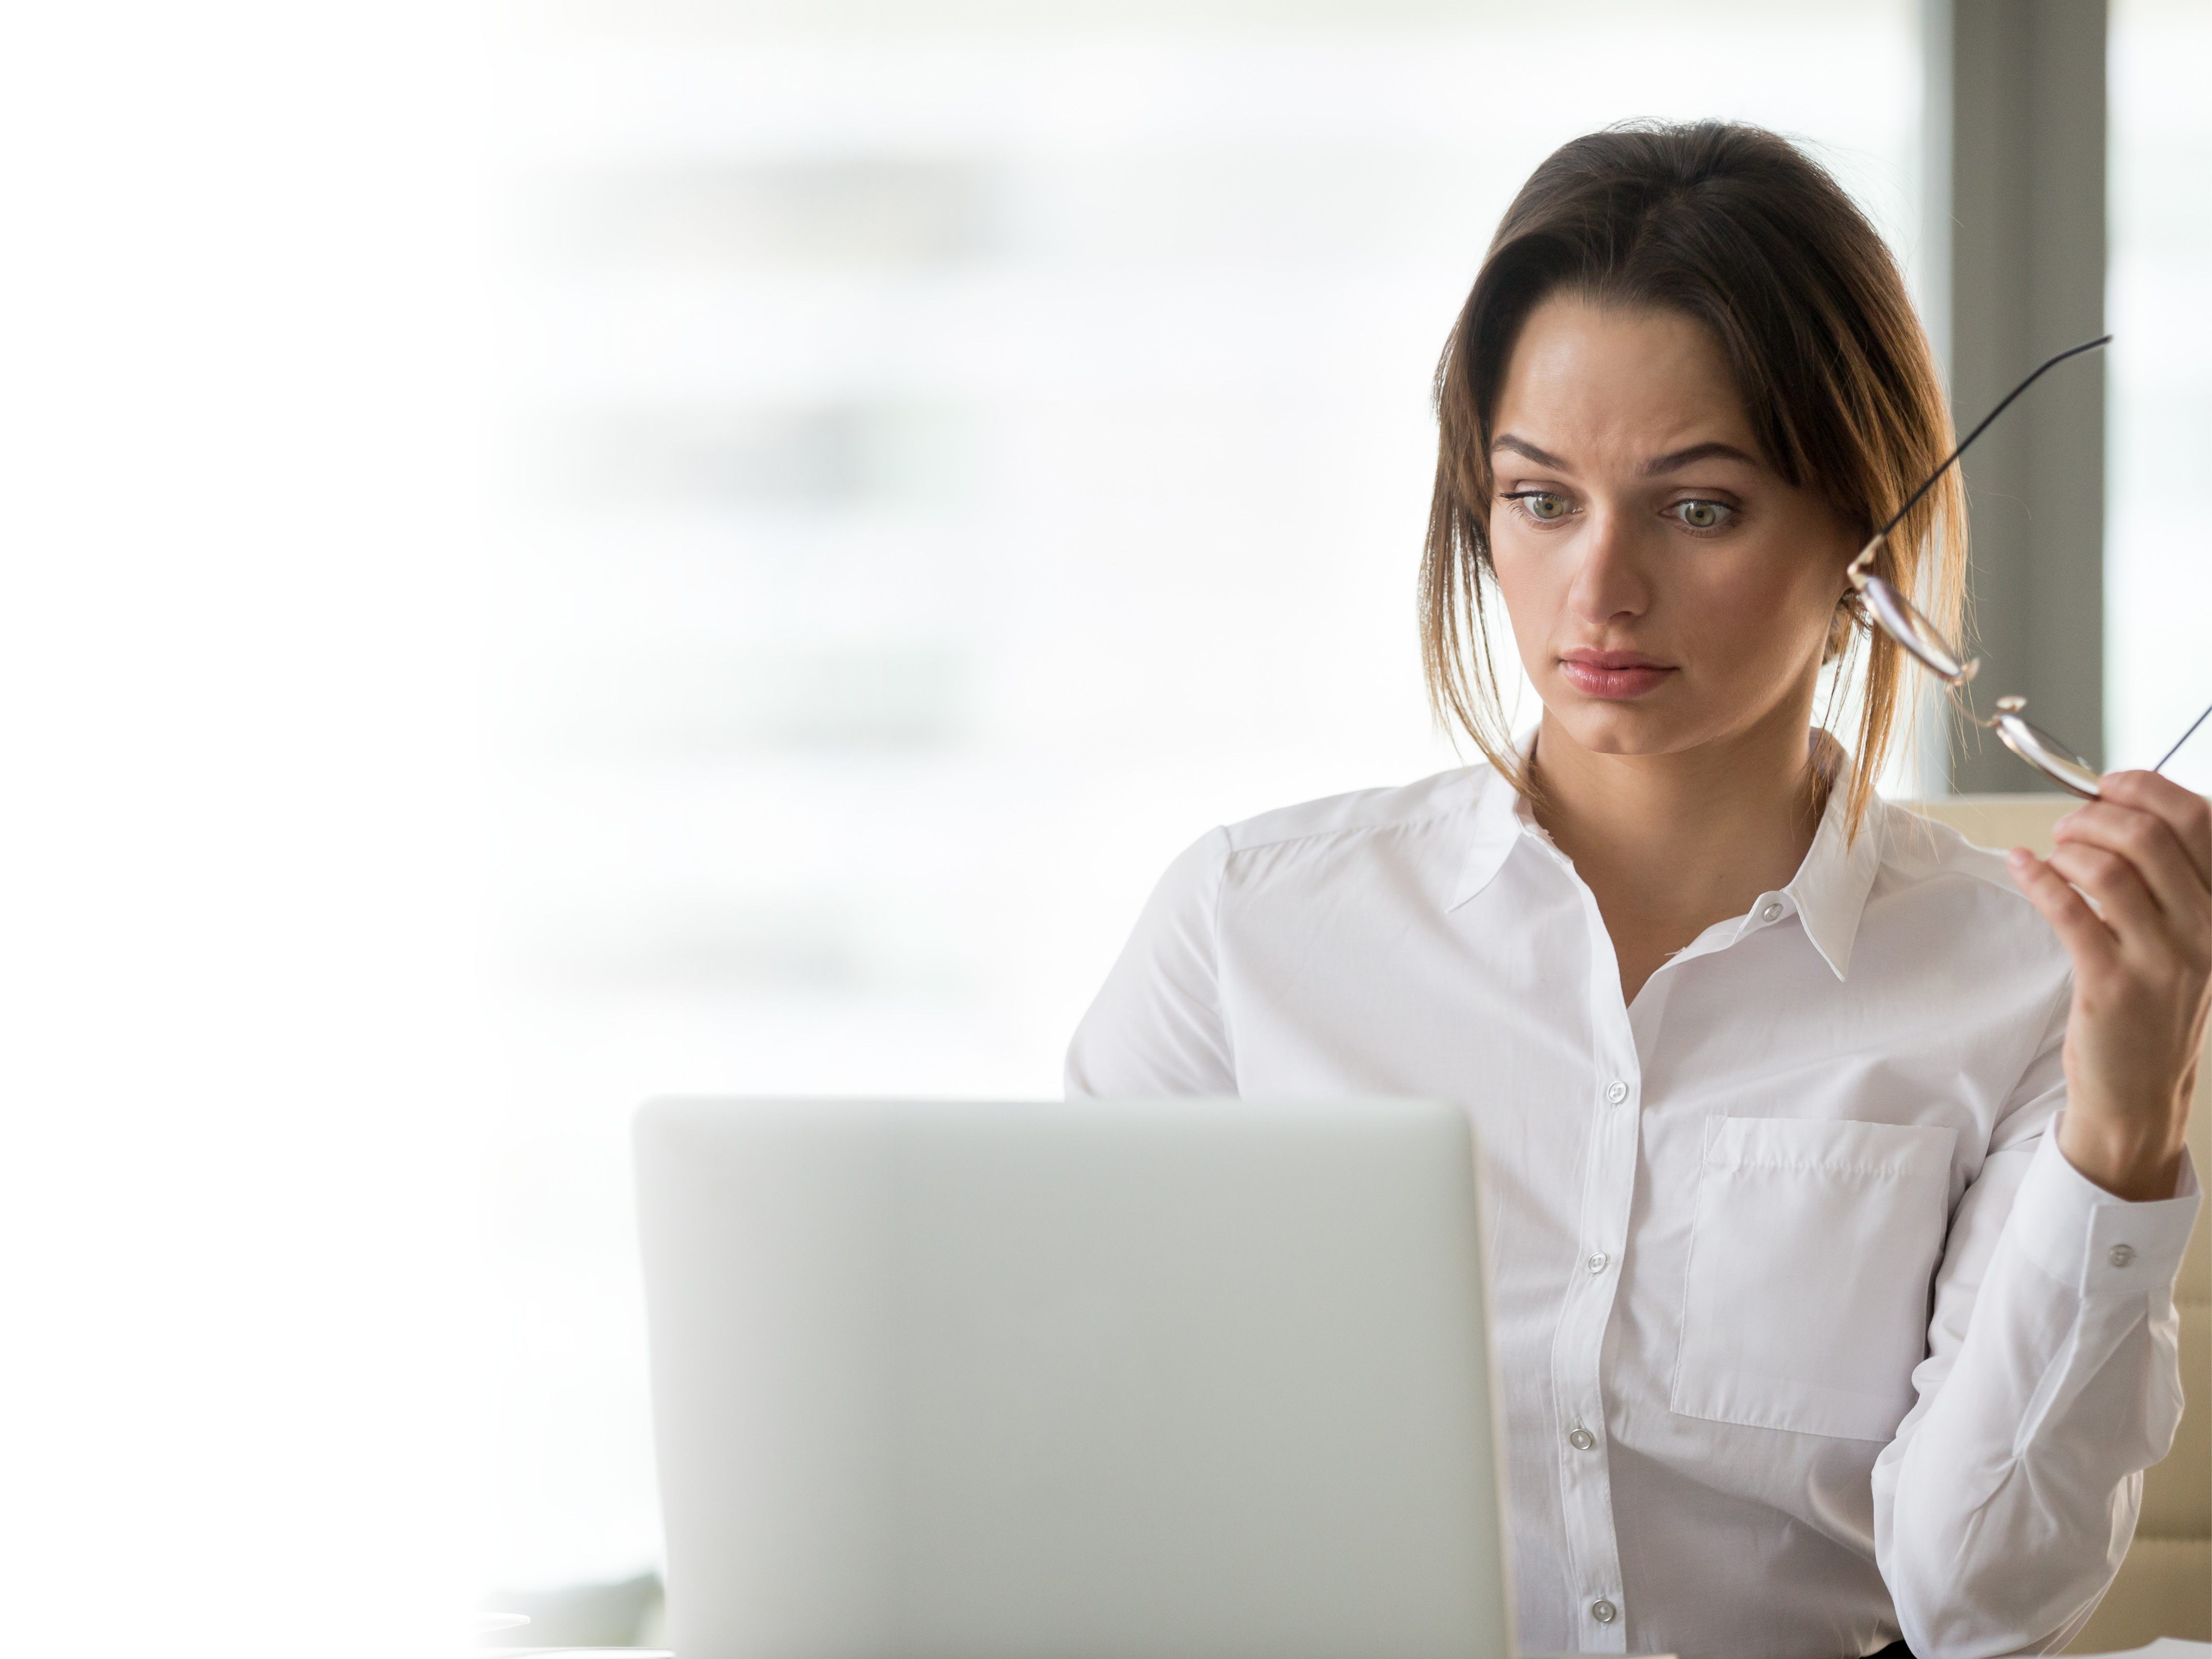 A woman is shocked looking at her computer.